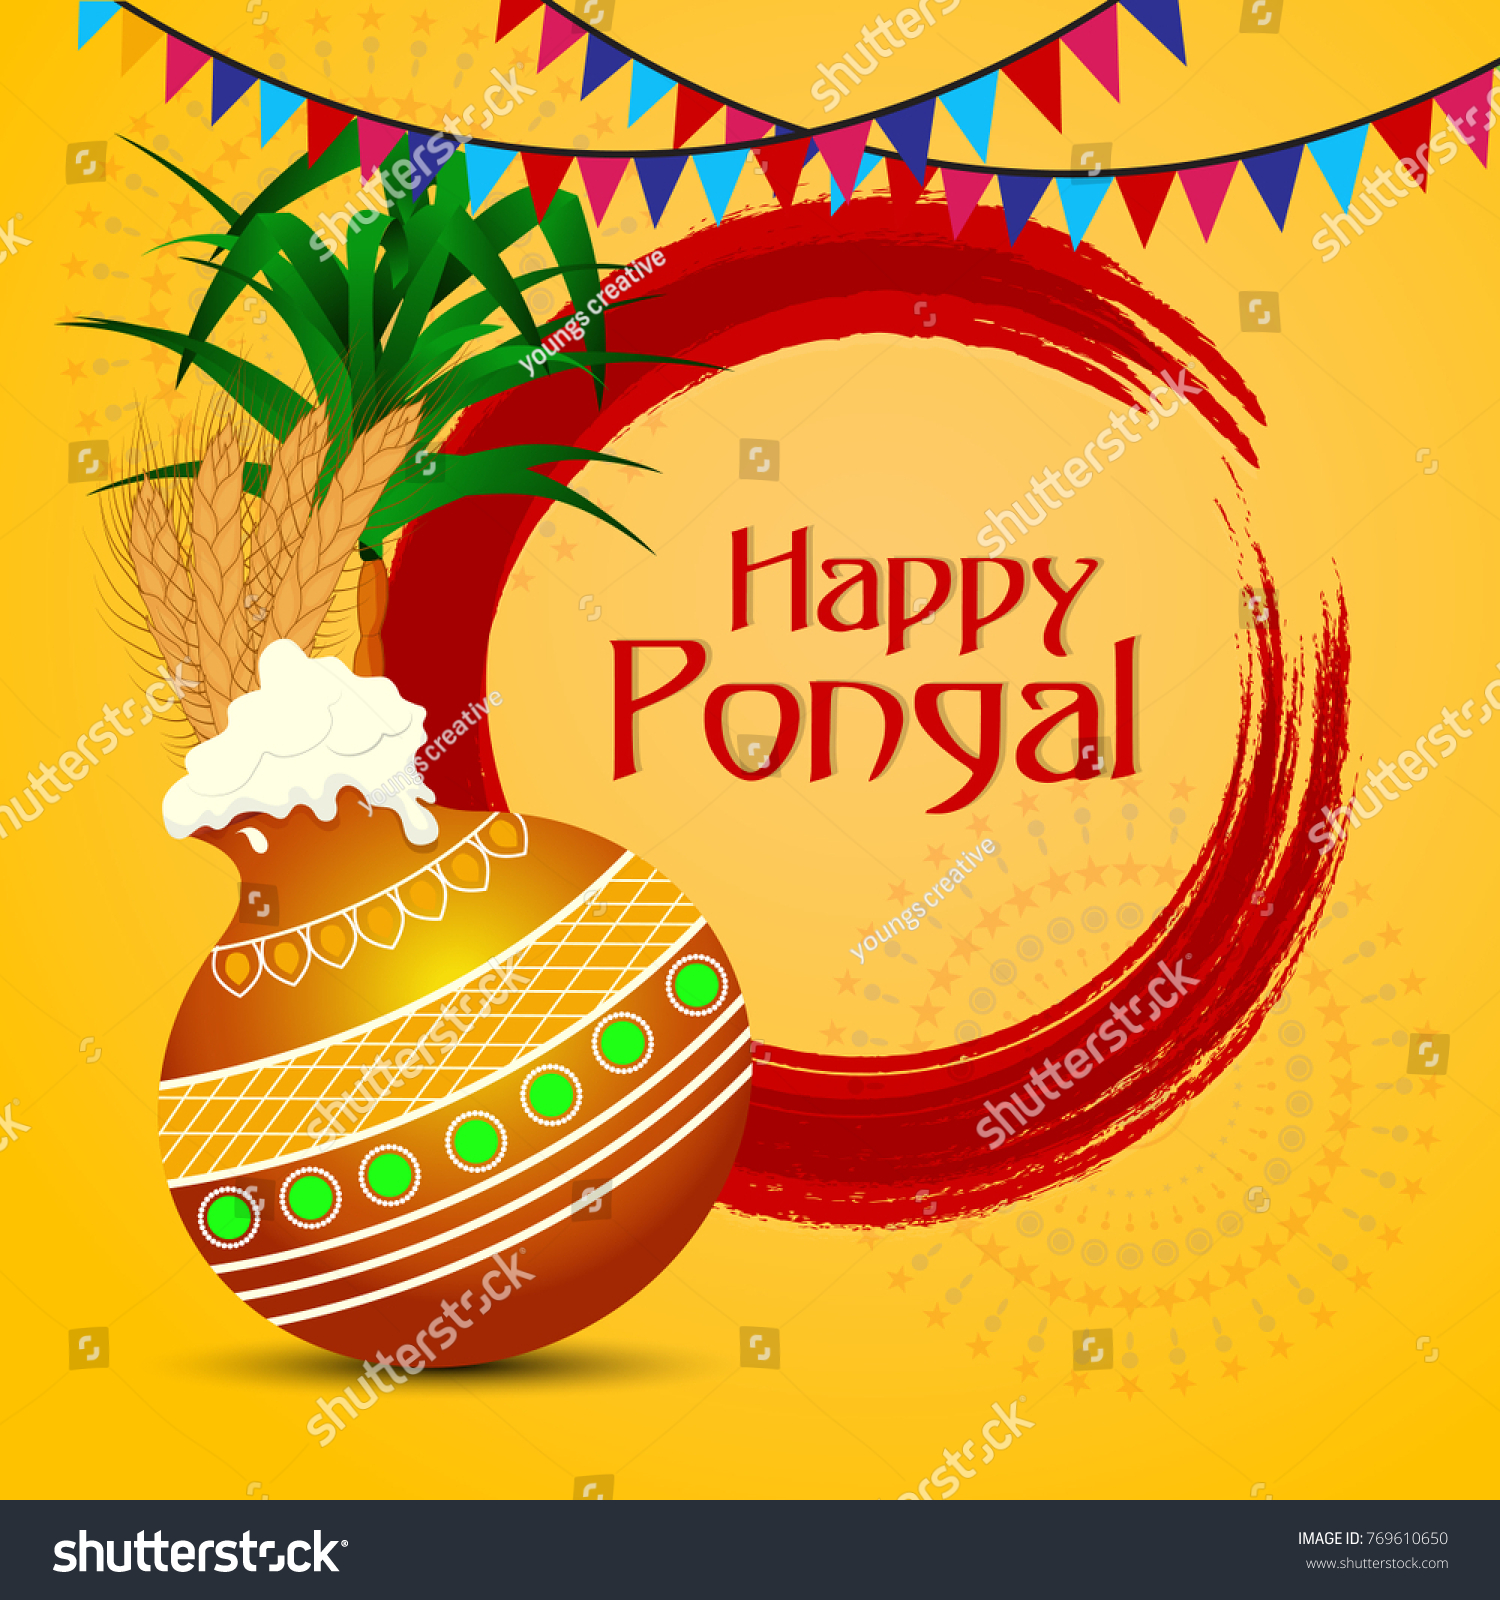 Pongal Thai Pongal Tamil Harvest Festival Stock Vector Royalty Free